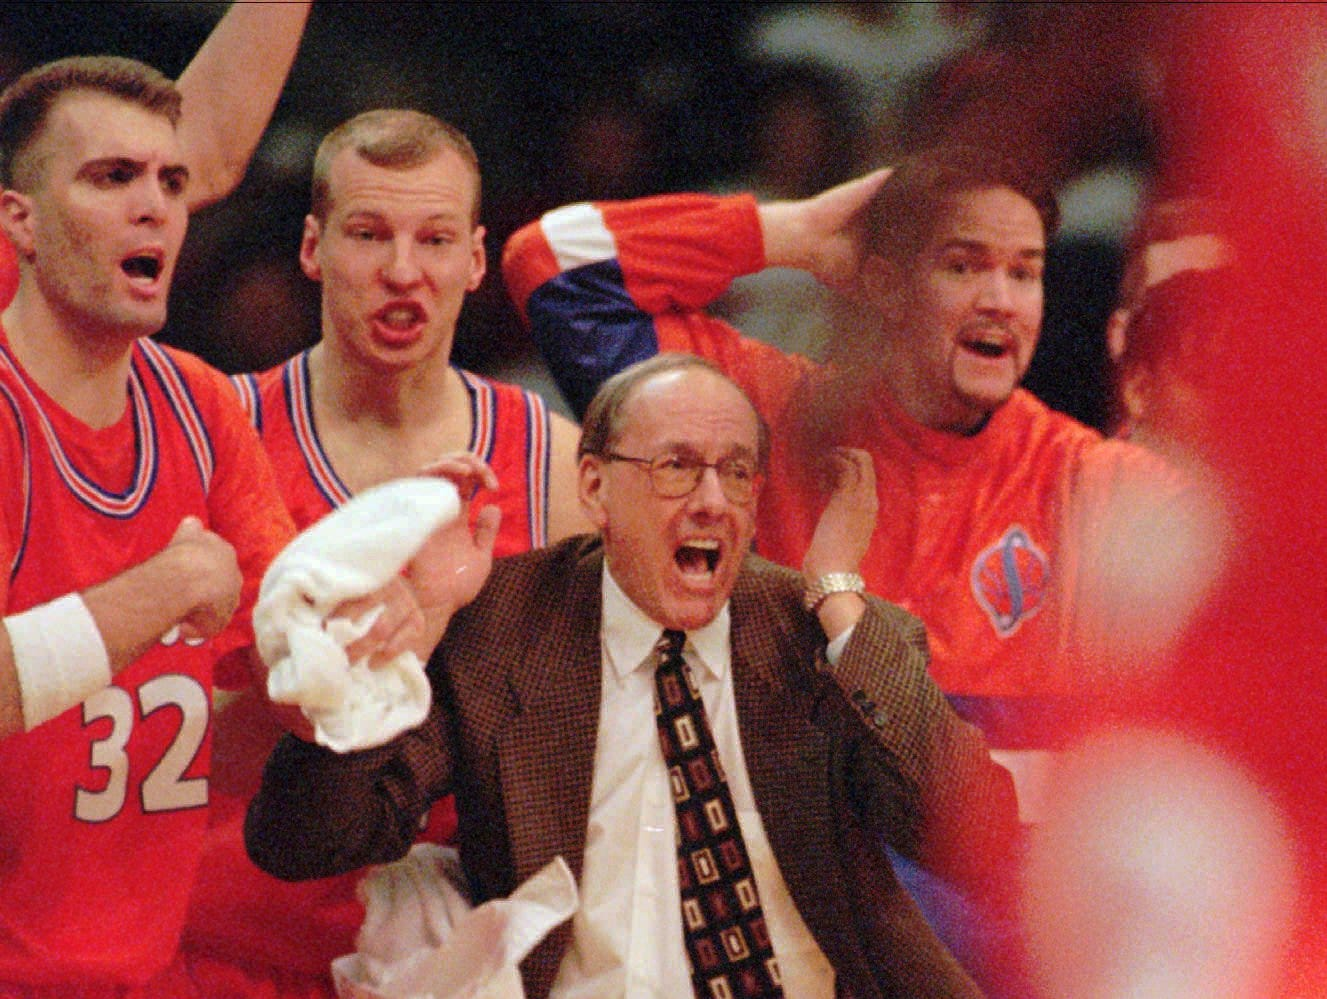 1996: Syracuse Orangemen coach Jim Boeheim reacts with his team in the final minutes of their 60-57 victory over the Kansas Jayhawks in the final game of the NCAA West Regional in Denver on Sunday, March 24, 1996.